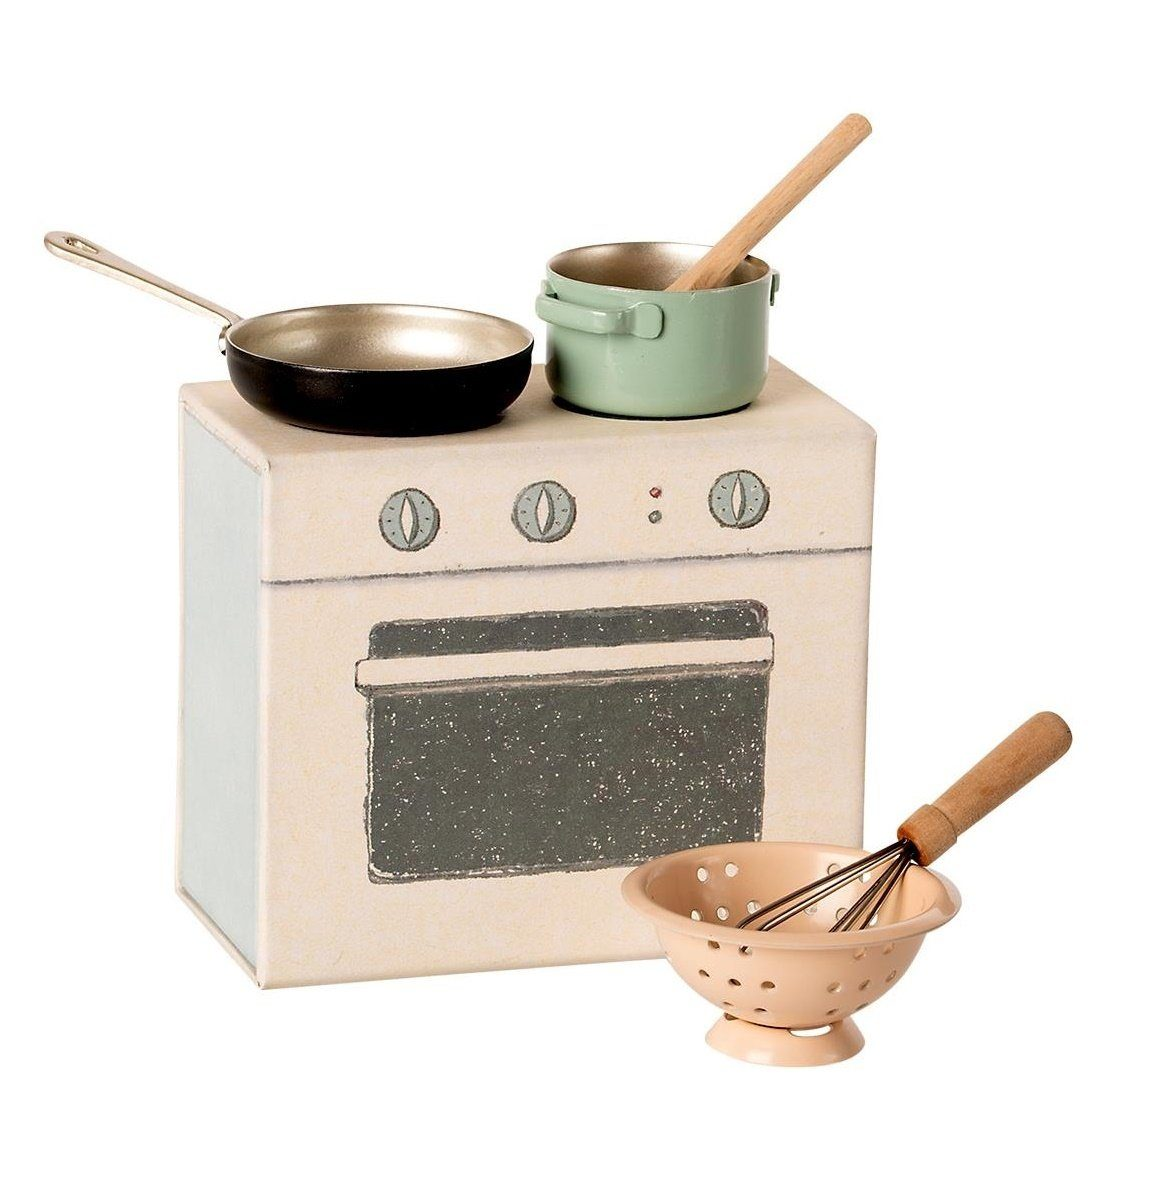 Cooking Set for Kitchen - Maileg